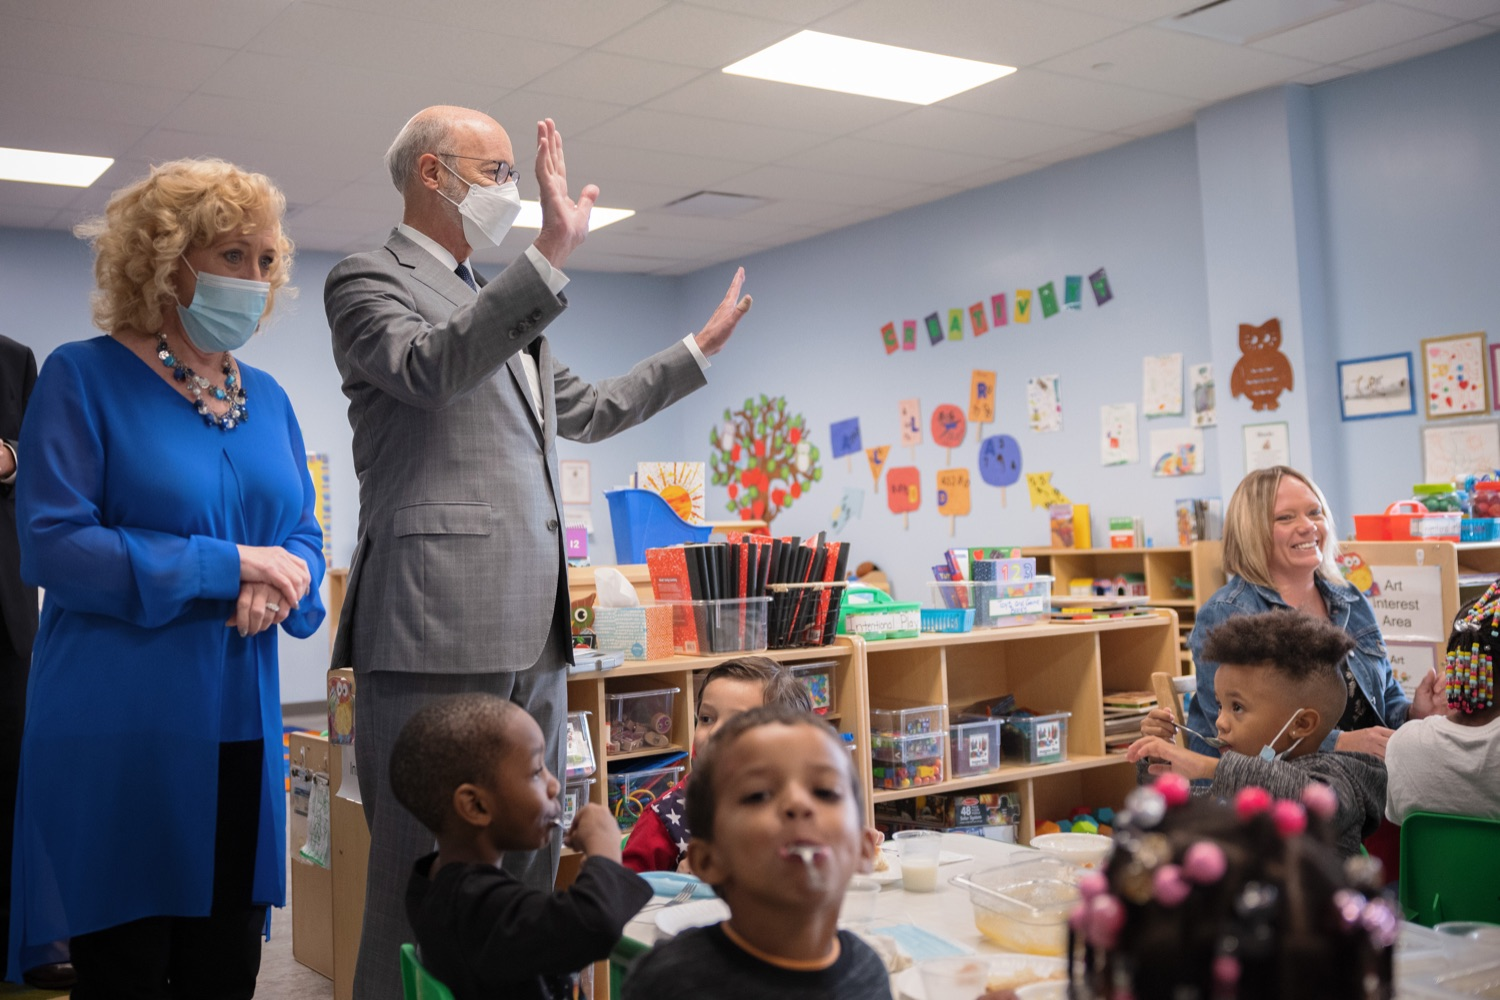 """<a href=""""https://filesource.wostreaming.net/commonwealthofpa/photo/20139_gov_childcare_dz_037.jpg"""" target=""""_blank"""">⇣Download Photo<br></a>Pennsylvania Governor Tom Wolf and Rina Irwin, CEO, Child Development Centers taking a tour of the Gilson Child Development Center.  Governor Tom Wolf today visited Gilson Child Development Center in Erie to celebrate the $30 million increase in state funding to expand early childhood learning to more than 3,200 additional young children and the $655 million available in federal funding to stabilize childcare providers during the pandemic.  Erie, PA  October 12, 2021"""